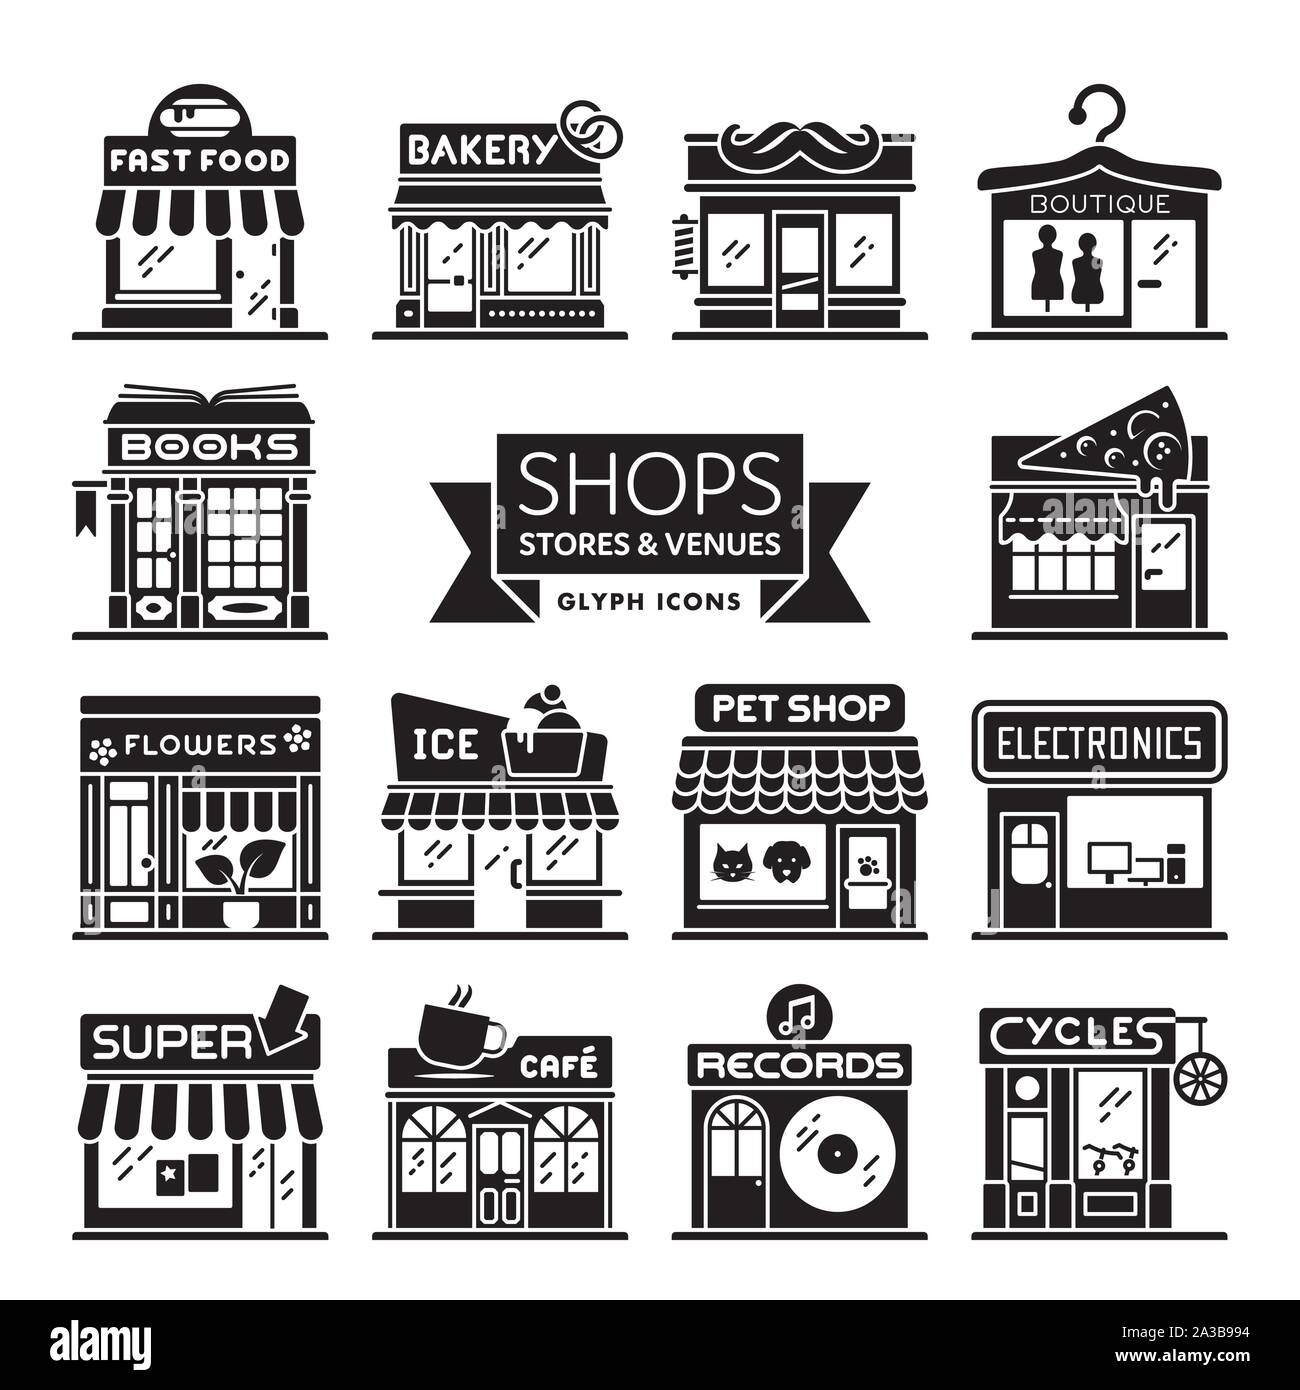 Shops, stores and restaurants icon collection. Set of 14 storefront vector illsutartions. Retail and shopping concept. Stock Vector